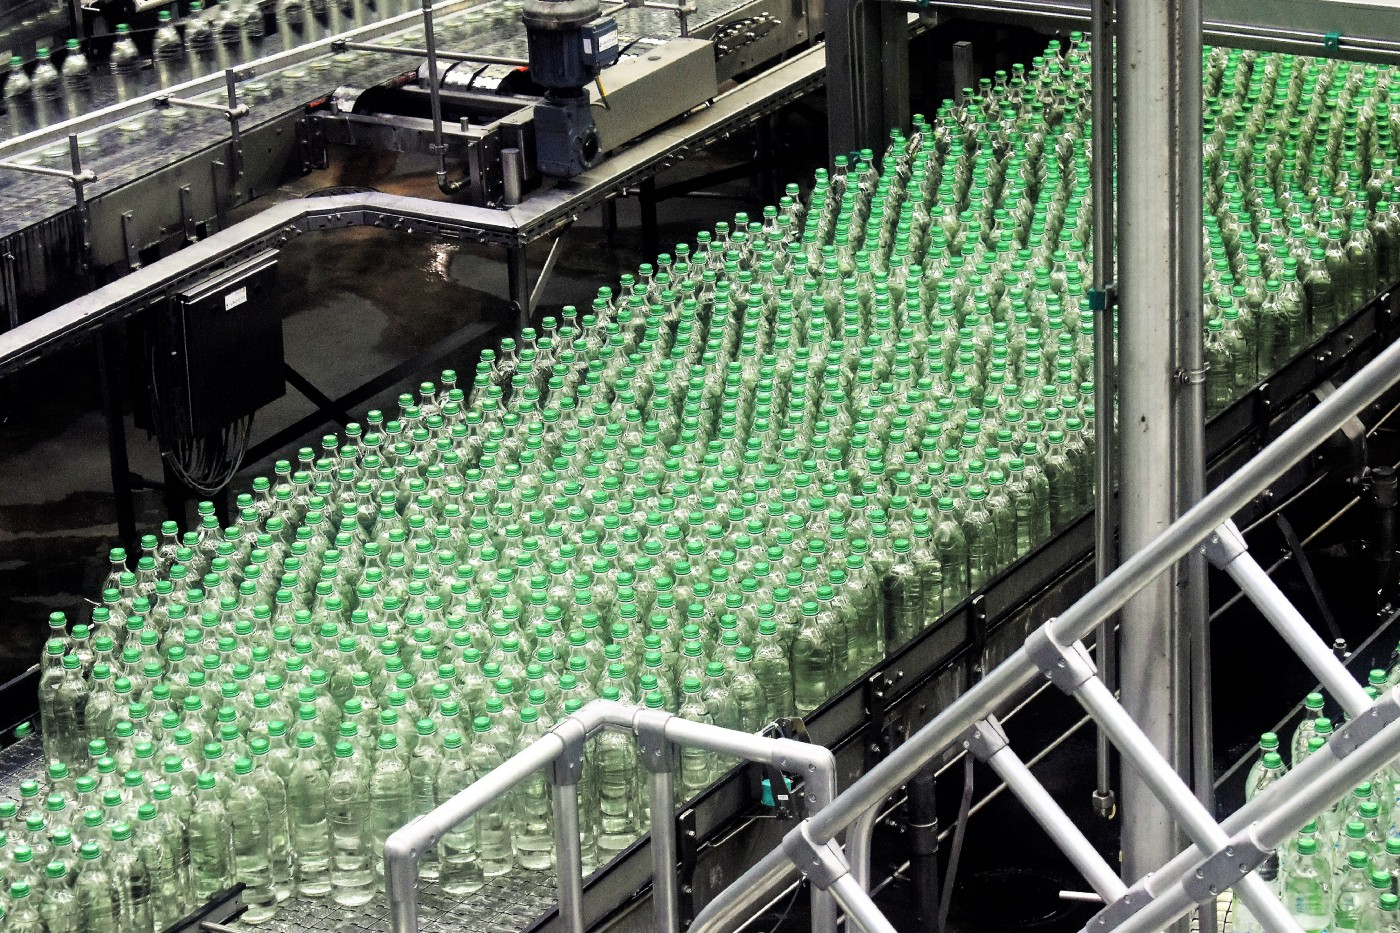 Bottles moving through an actual factory.